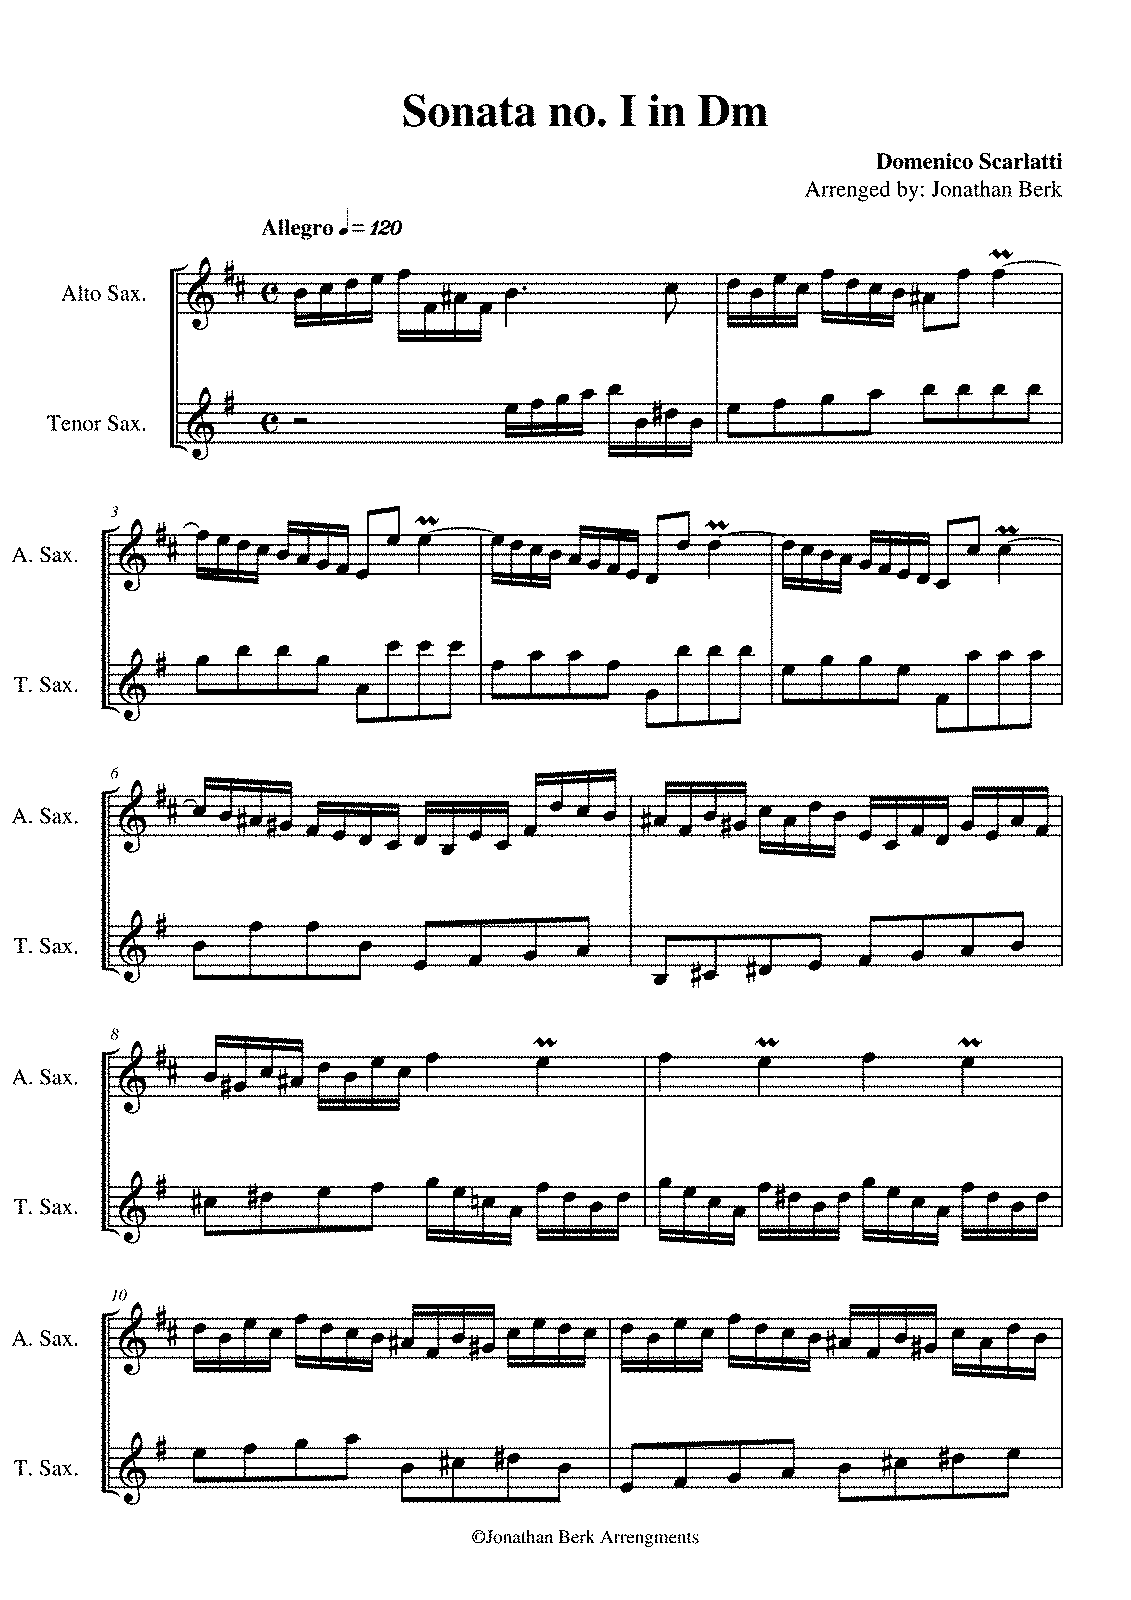 PMLP330125-Domenico Scarlatti - Sonata no. I Dm for Alto & Tenor Sax..pdf